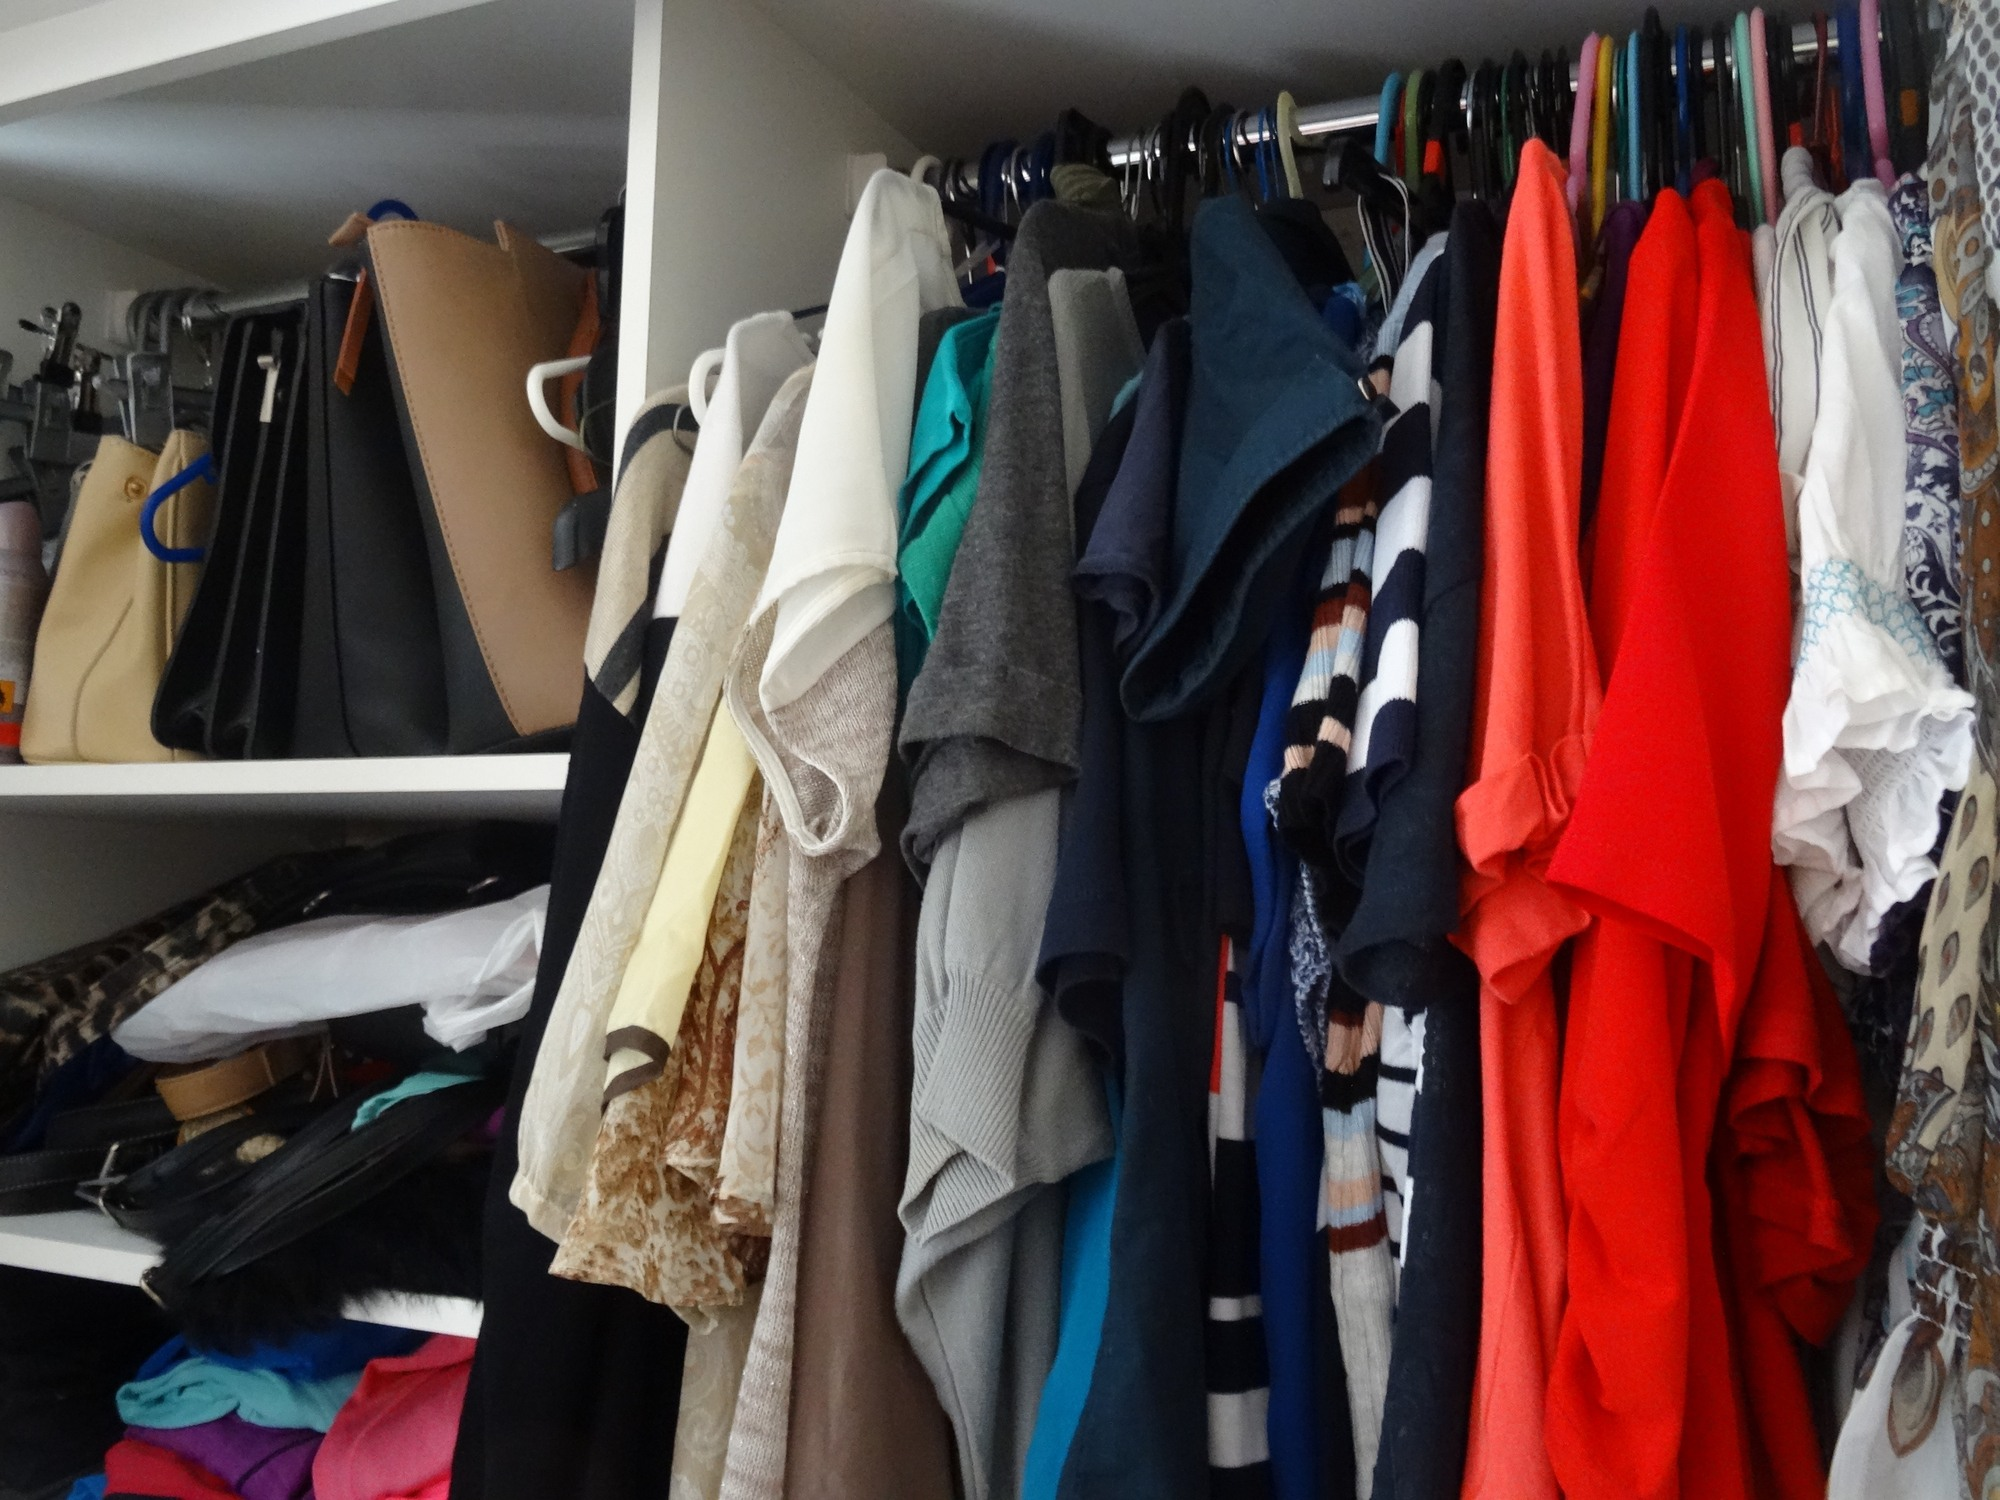 Overstuffed clothing in wardrobe or closet